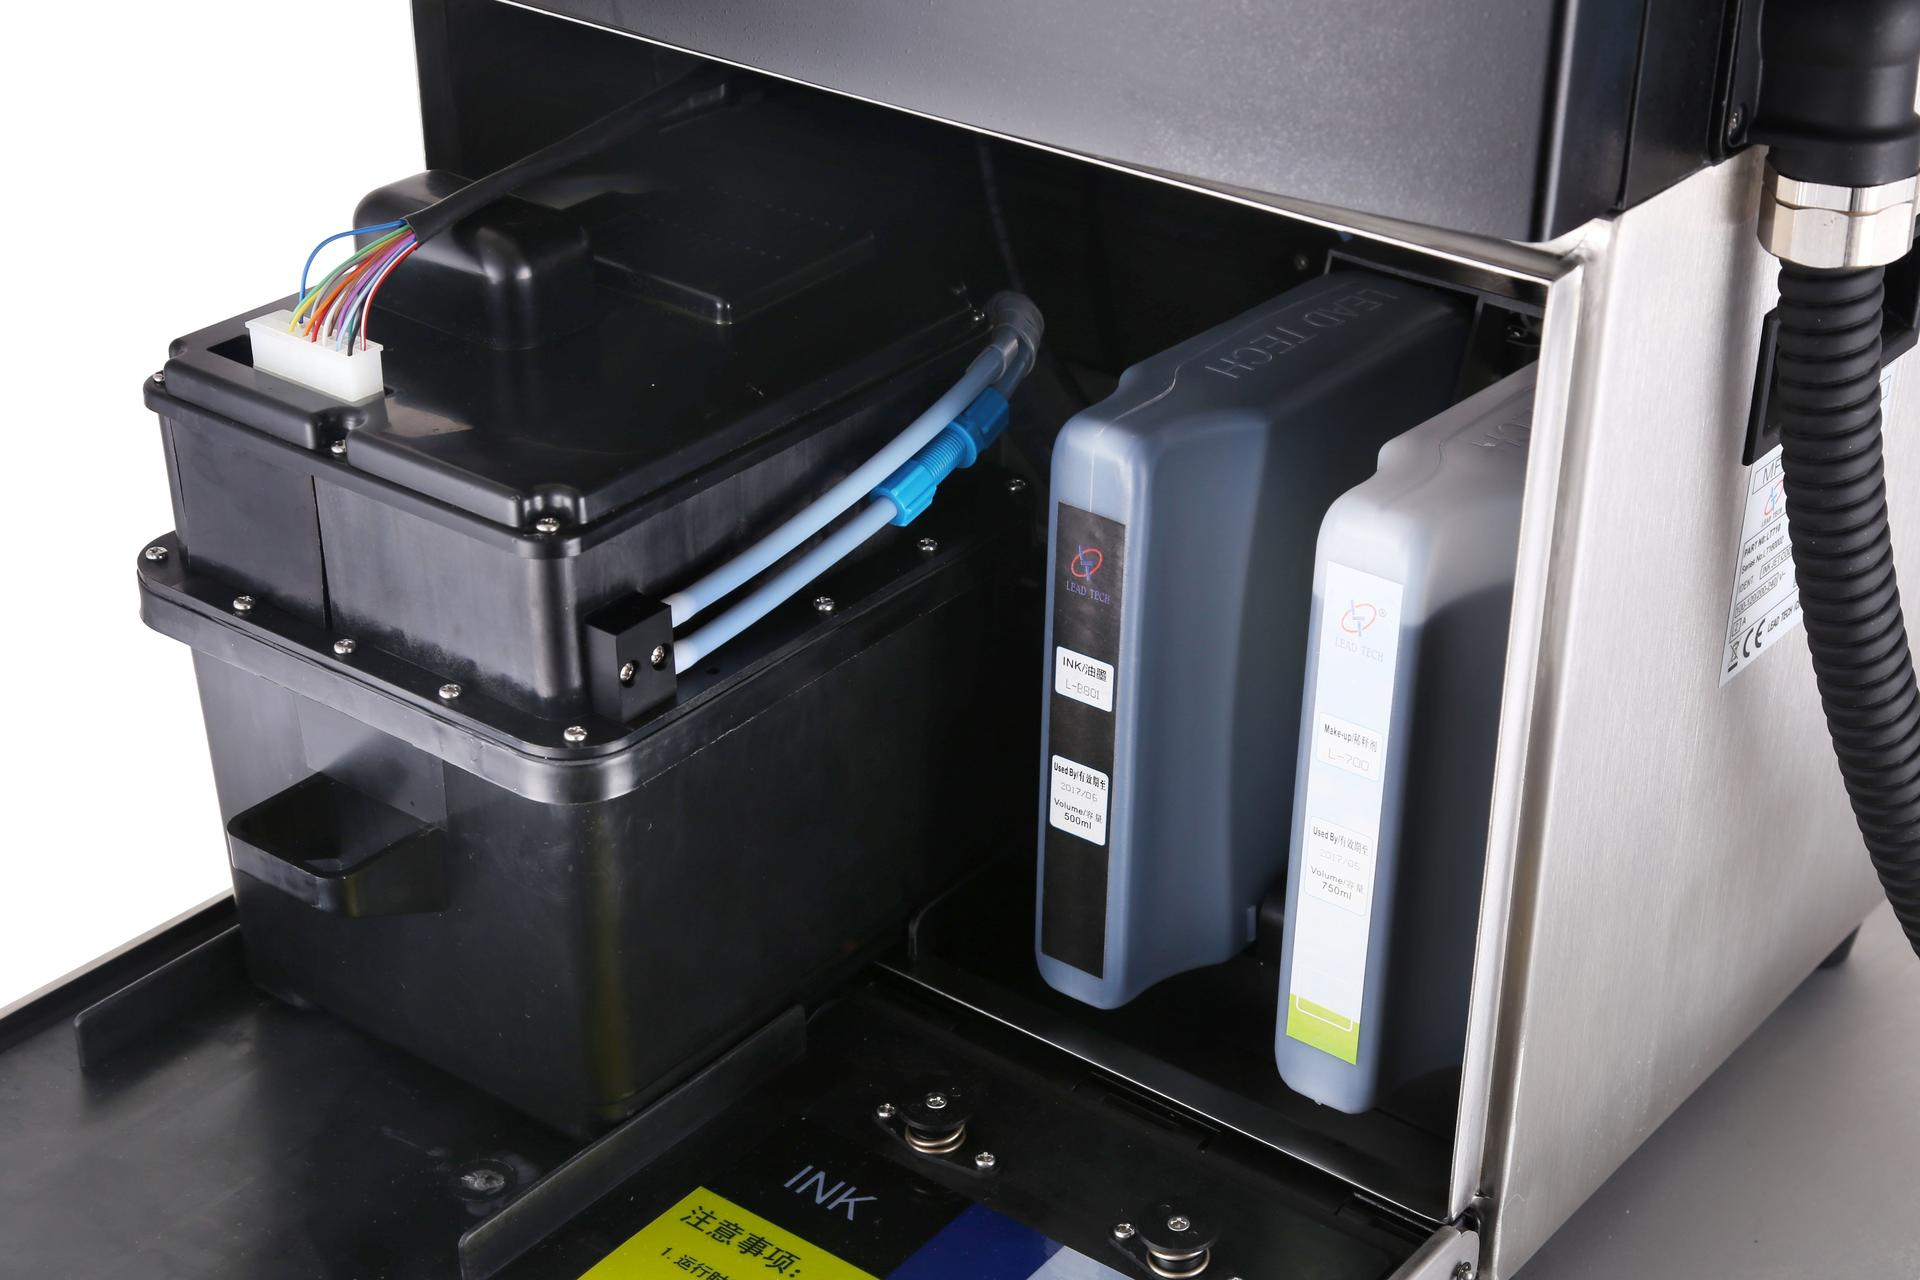 Lead Tech Lt710 HDPE Coding Cij Inkjet Printer